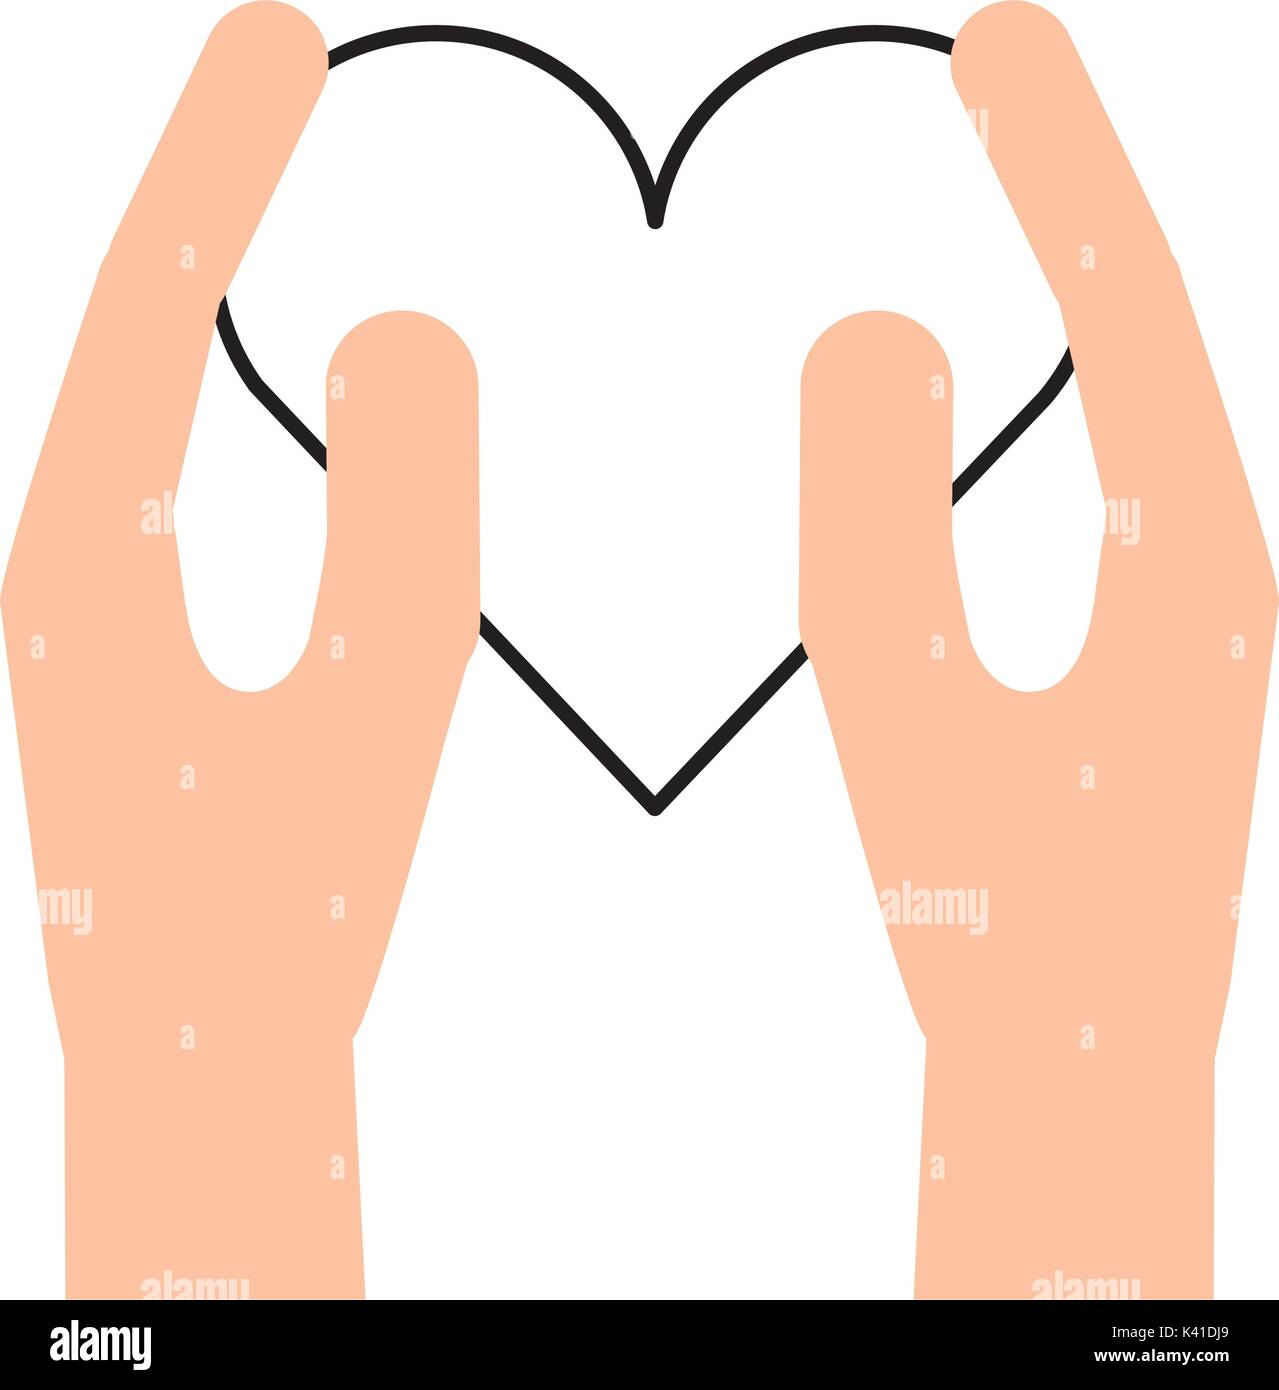 hand holding heart healthcare humanity charity - Stock Image